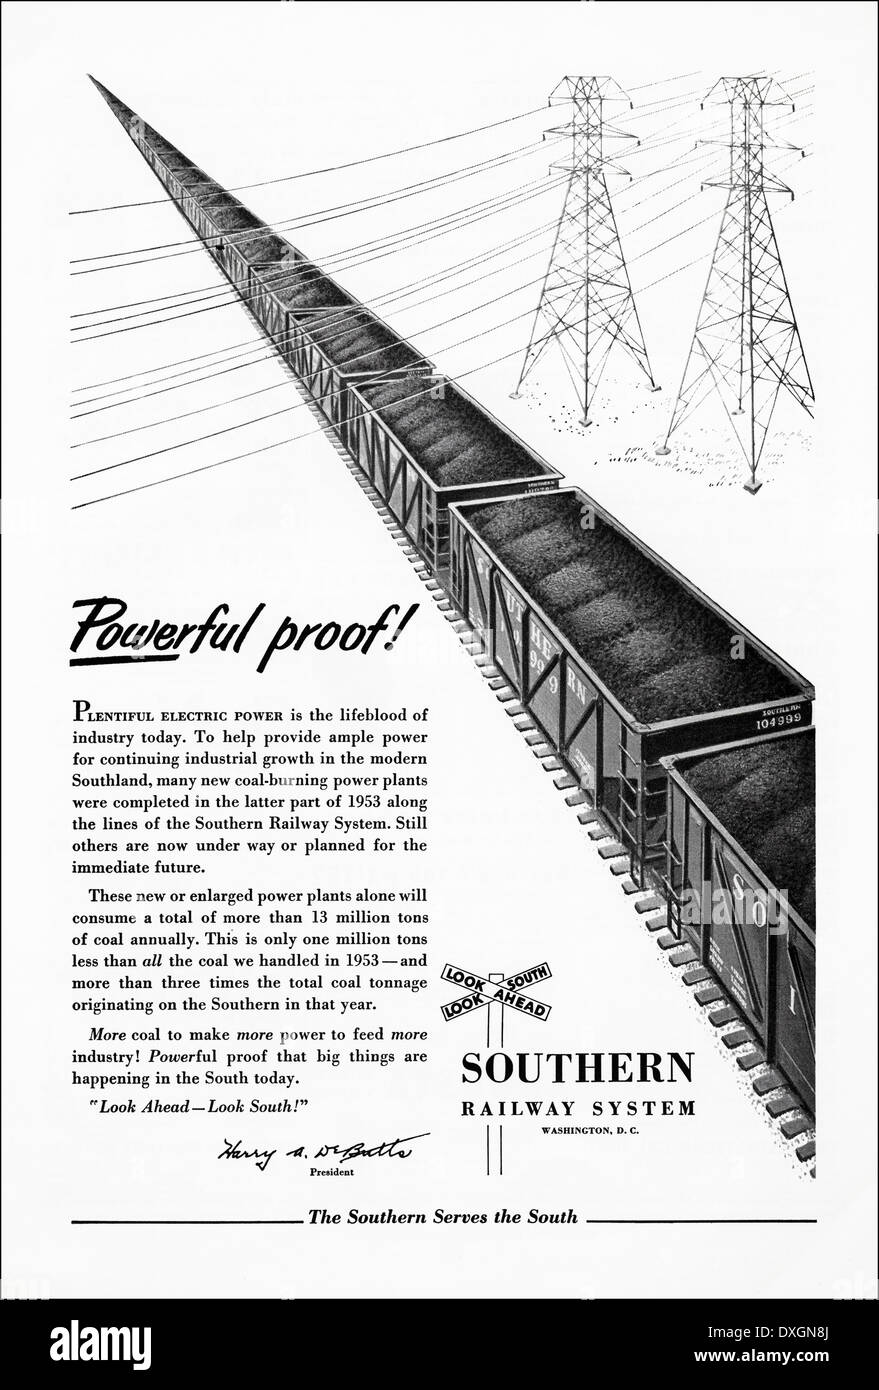 1950s advertisement for Southern Railway System coal transportation advert in American magazine circa 1954 - Stock Image